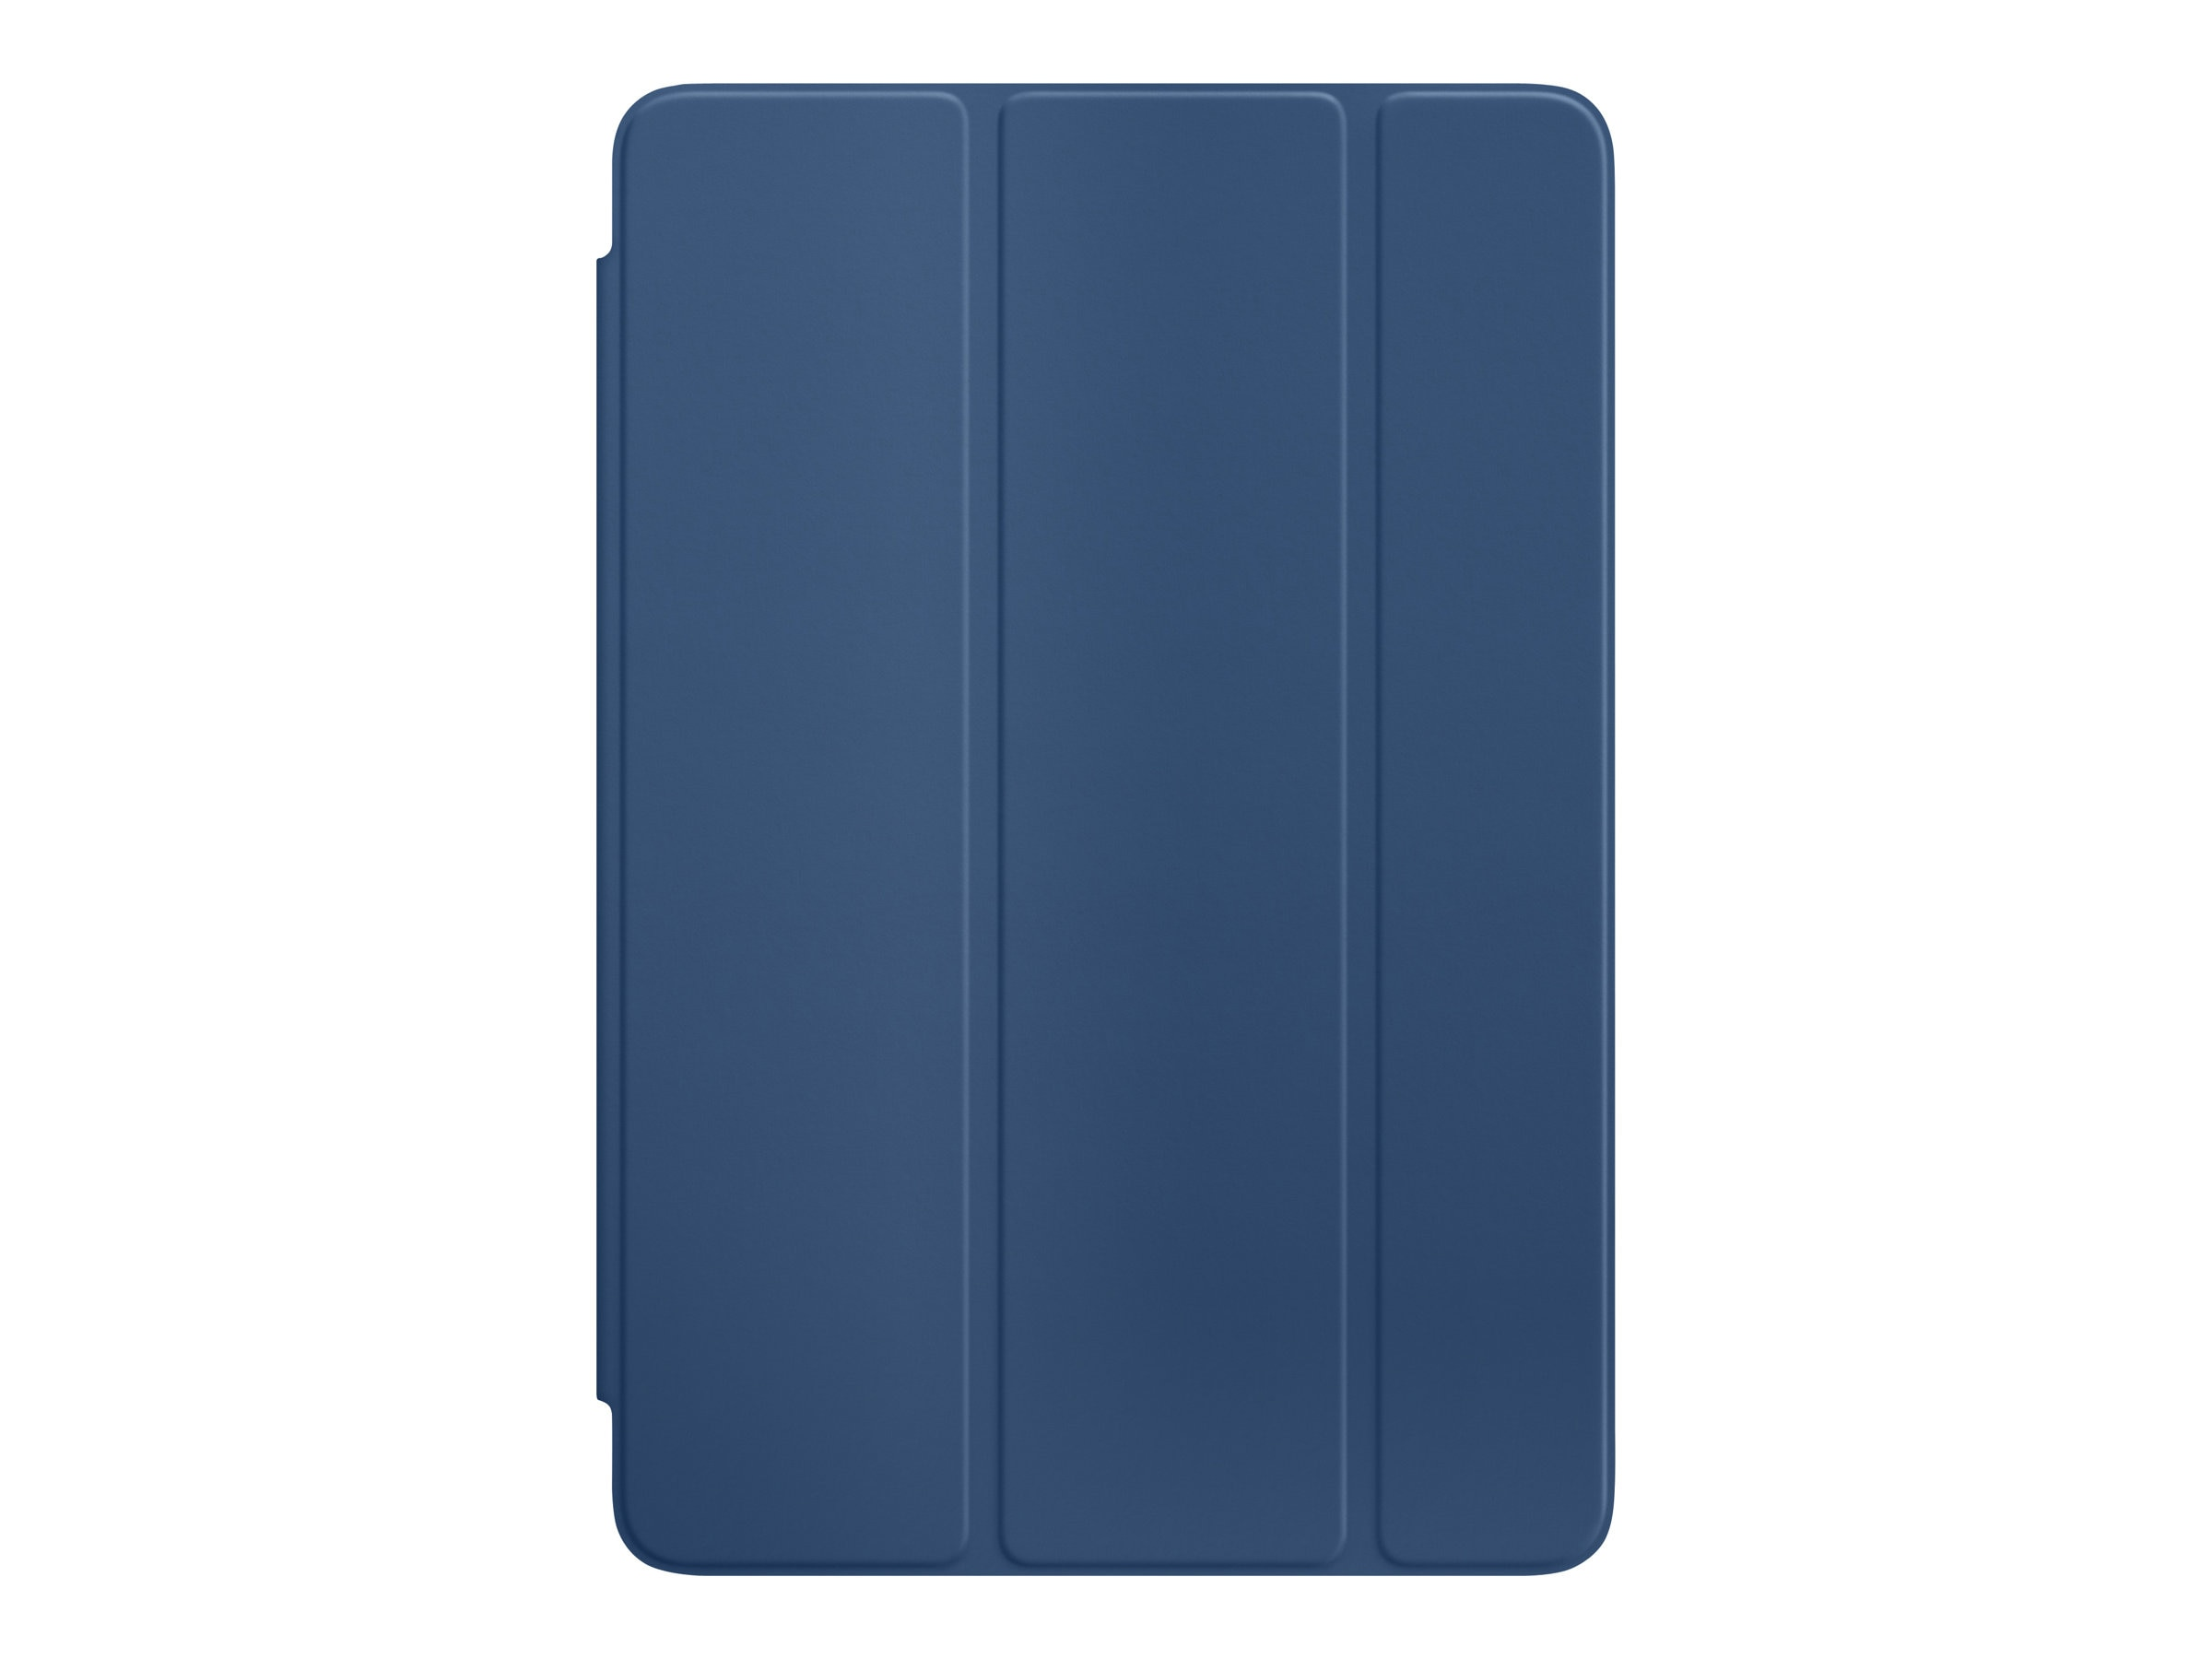 Apple Smart Cover for iPad mini 4, Ocean Blue, MN092ZM/A, 32669075, Carrying Cases - Tablets & eReaders